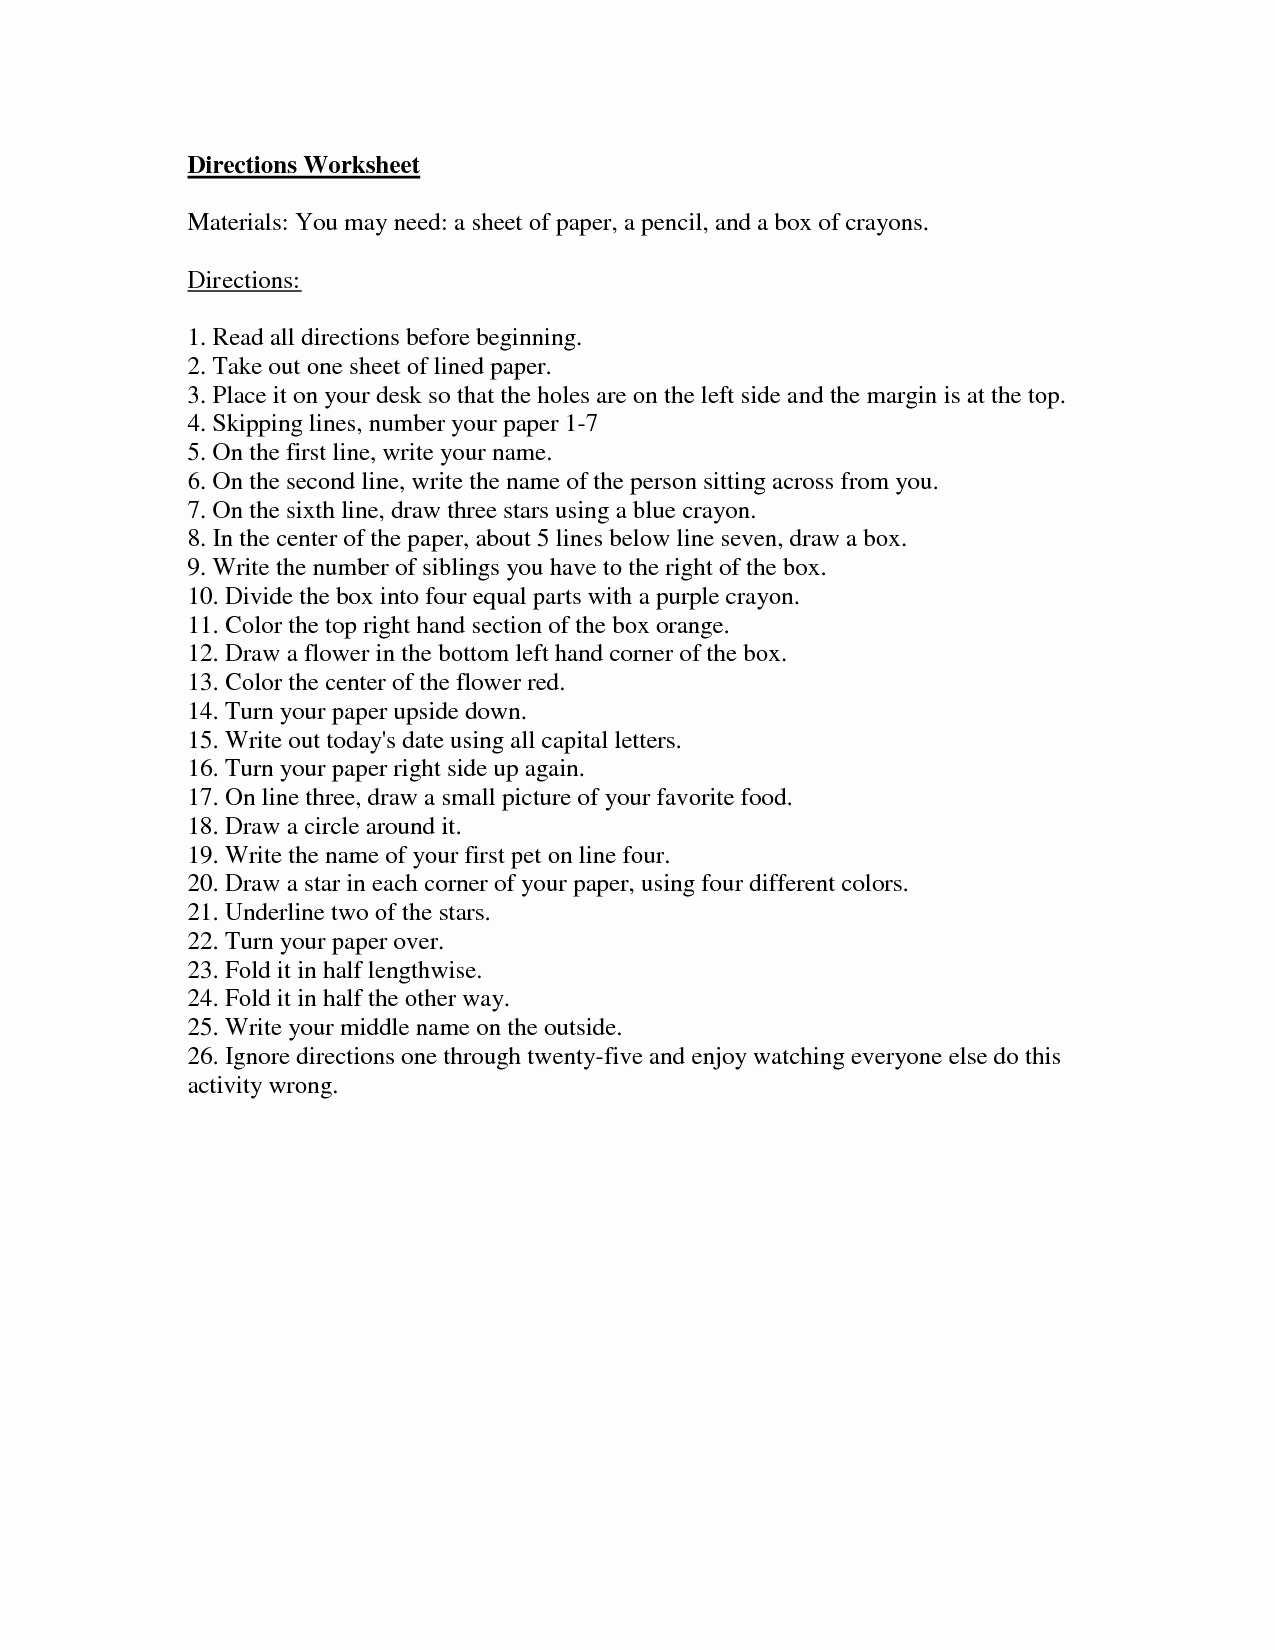 Following Directions Worksheet Trick Luxury Following Directions Worksheet Trick High School